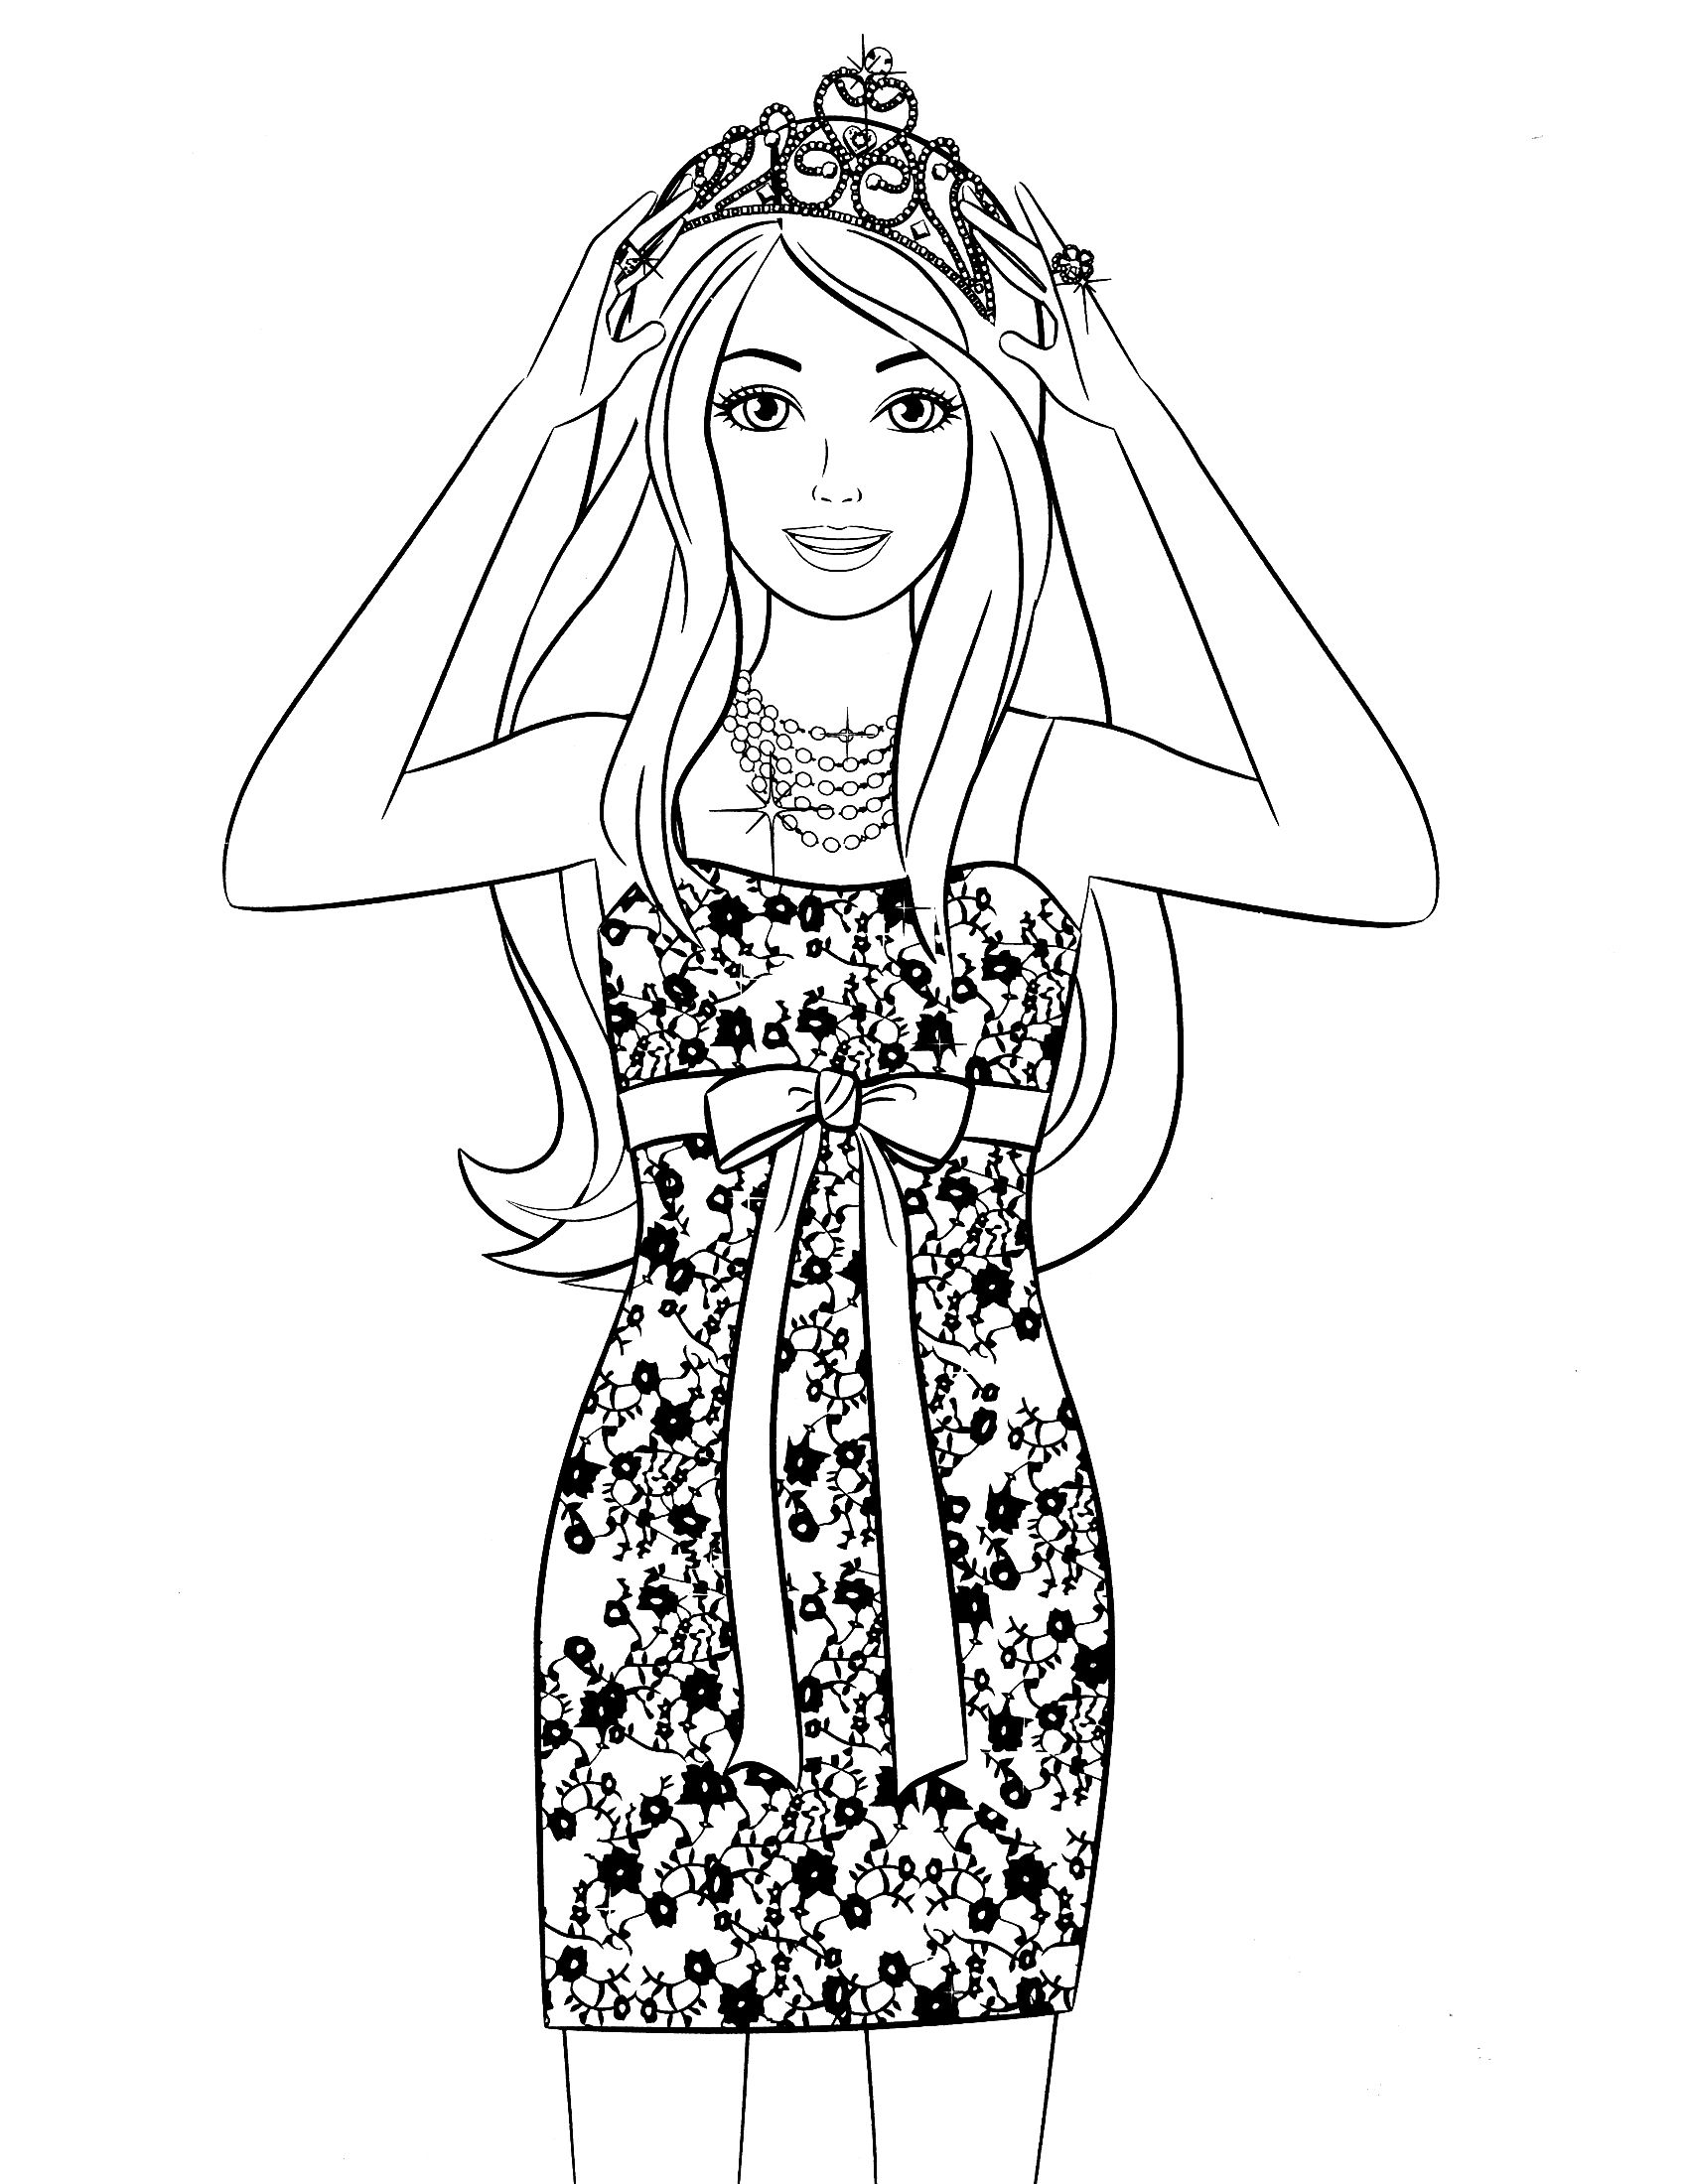 Barbie Coloring Pages for Girls | Barbie Coloring Page 89 | About ...